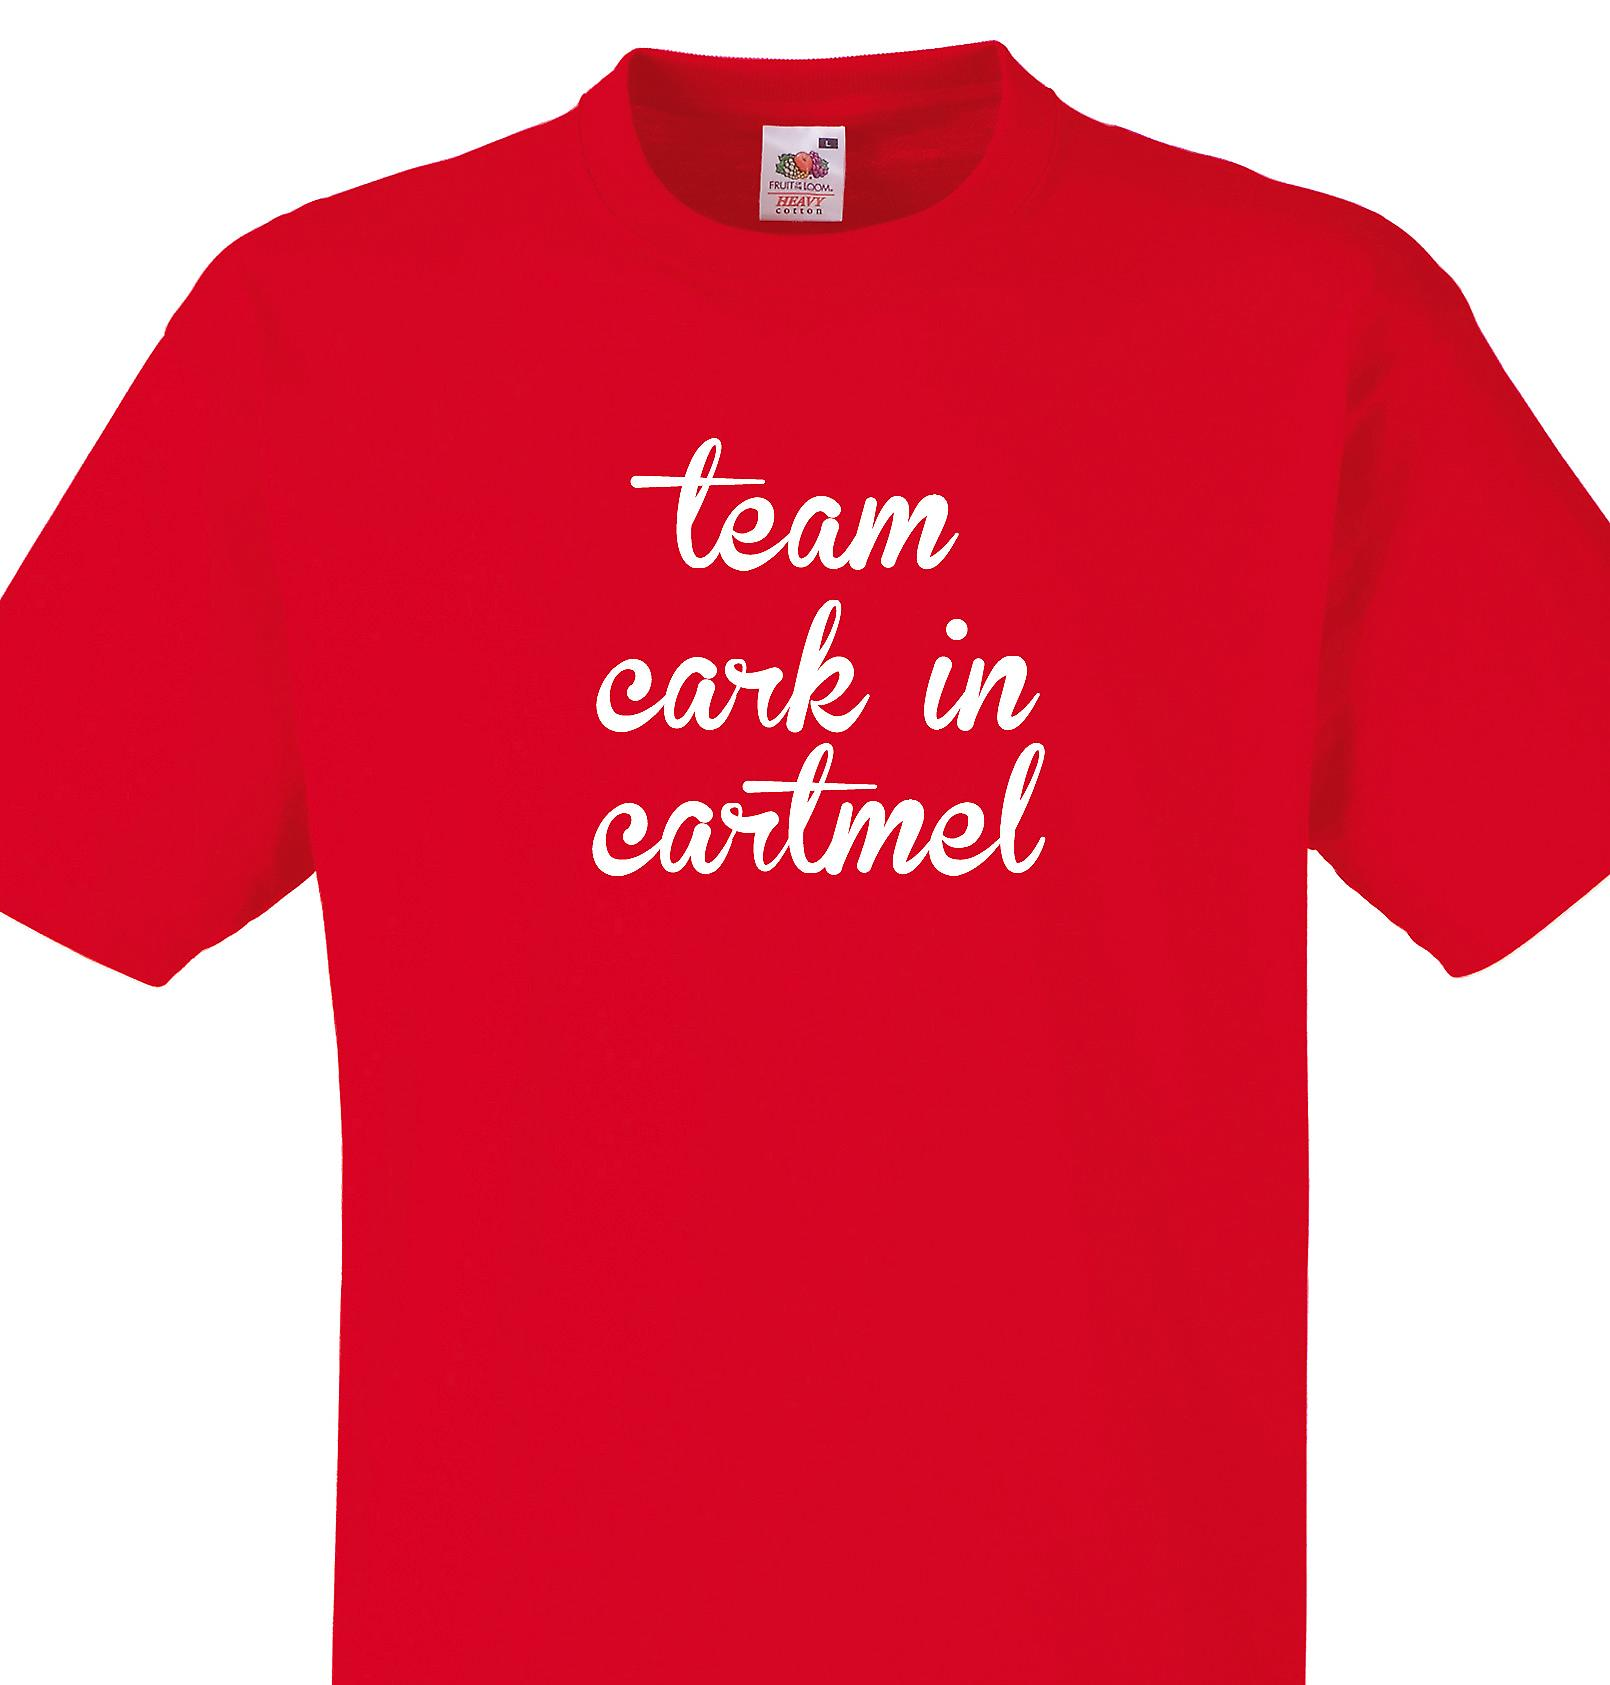 Team Cark in cartmel Red T shirt